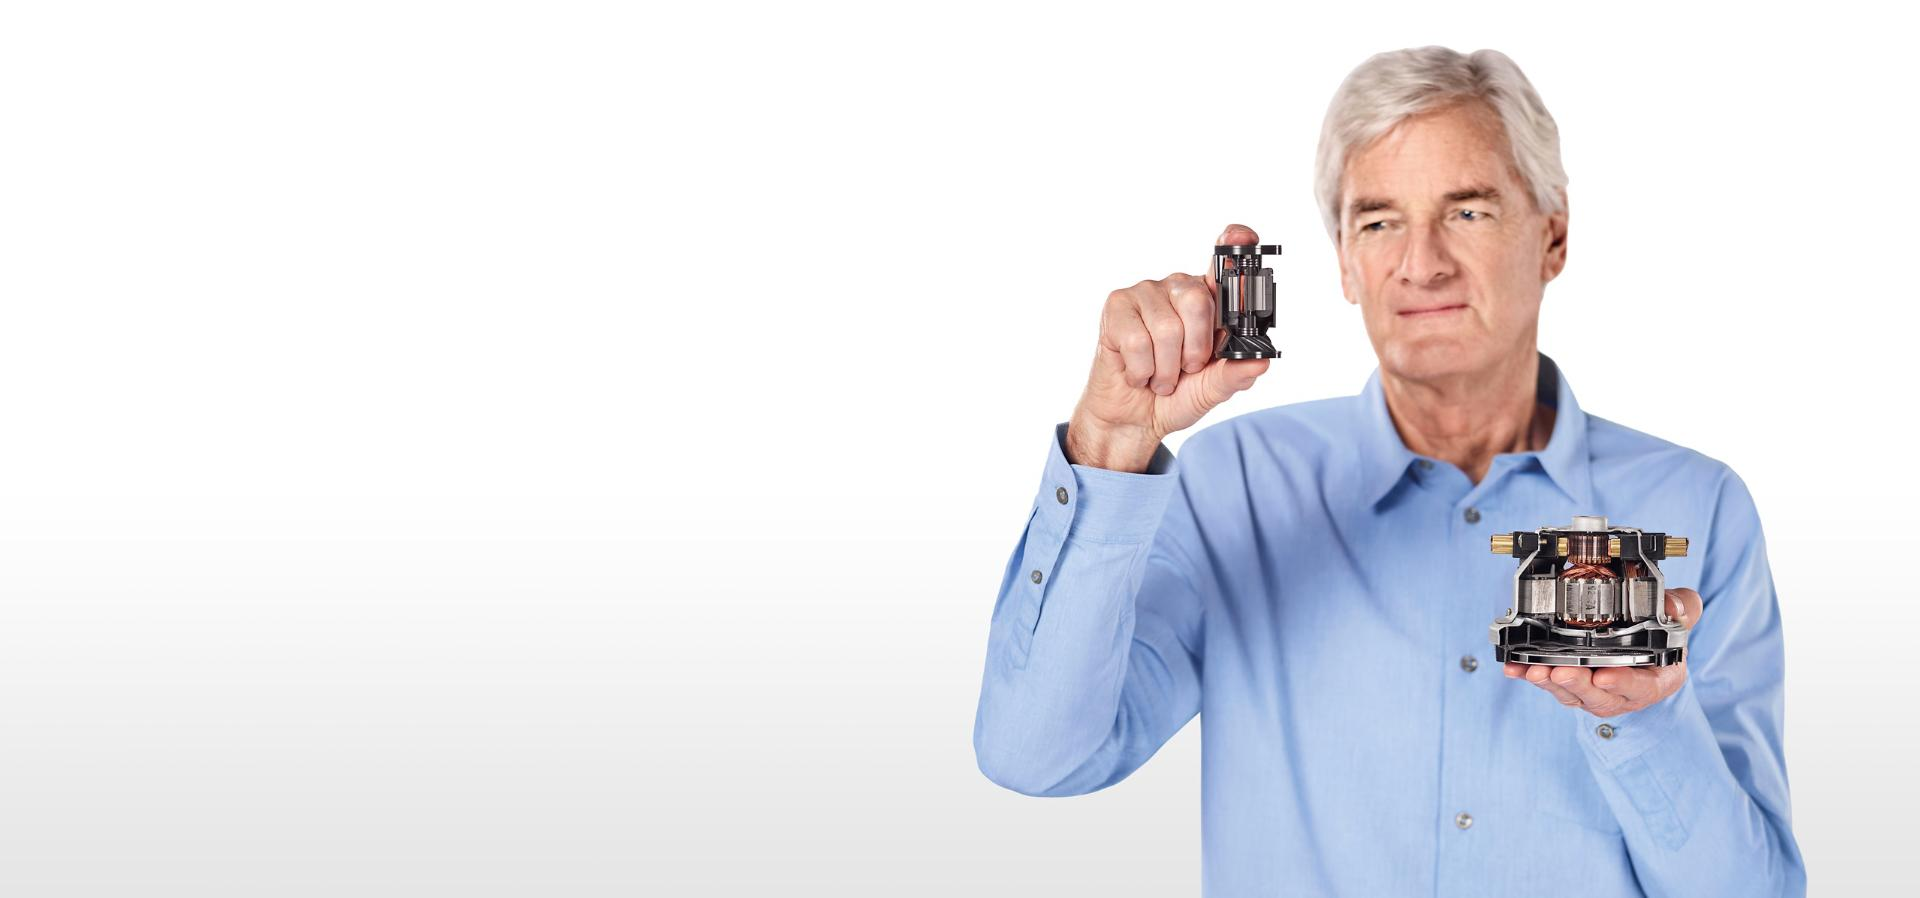 James Dyson compares a Dyson Hyperdymium motor to a conventional motor